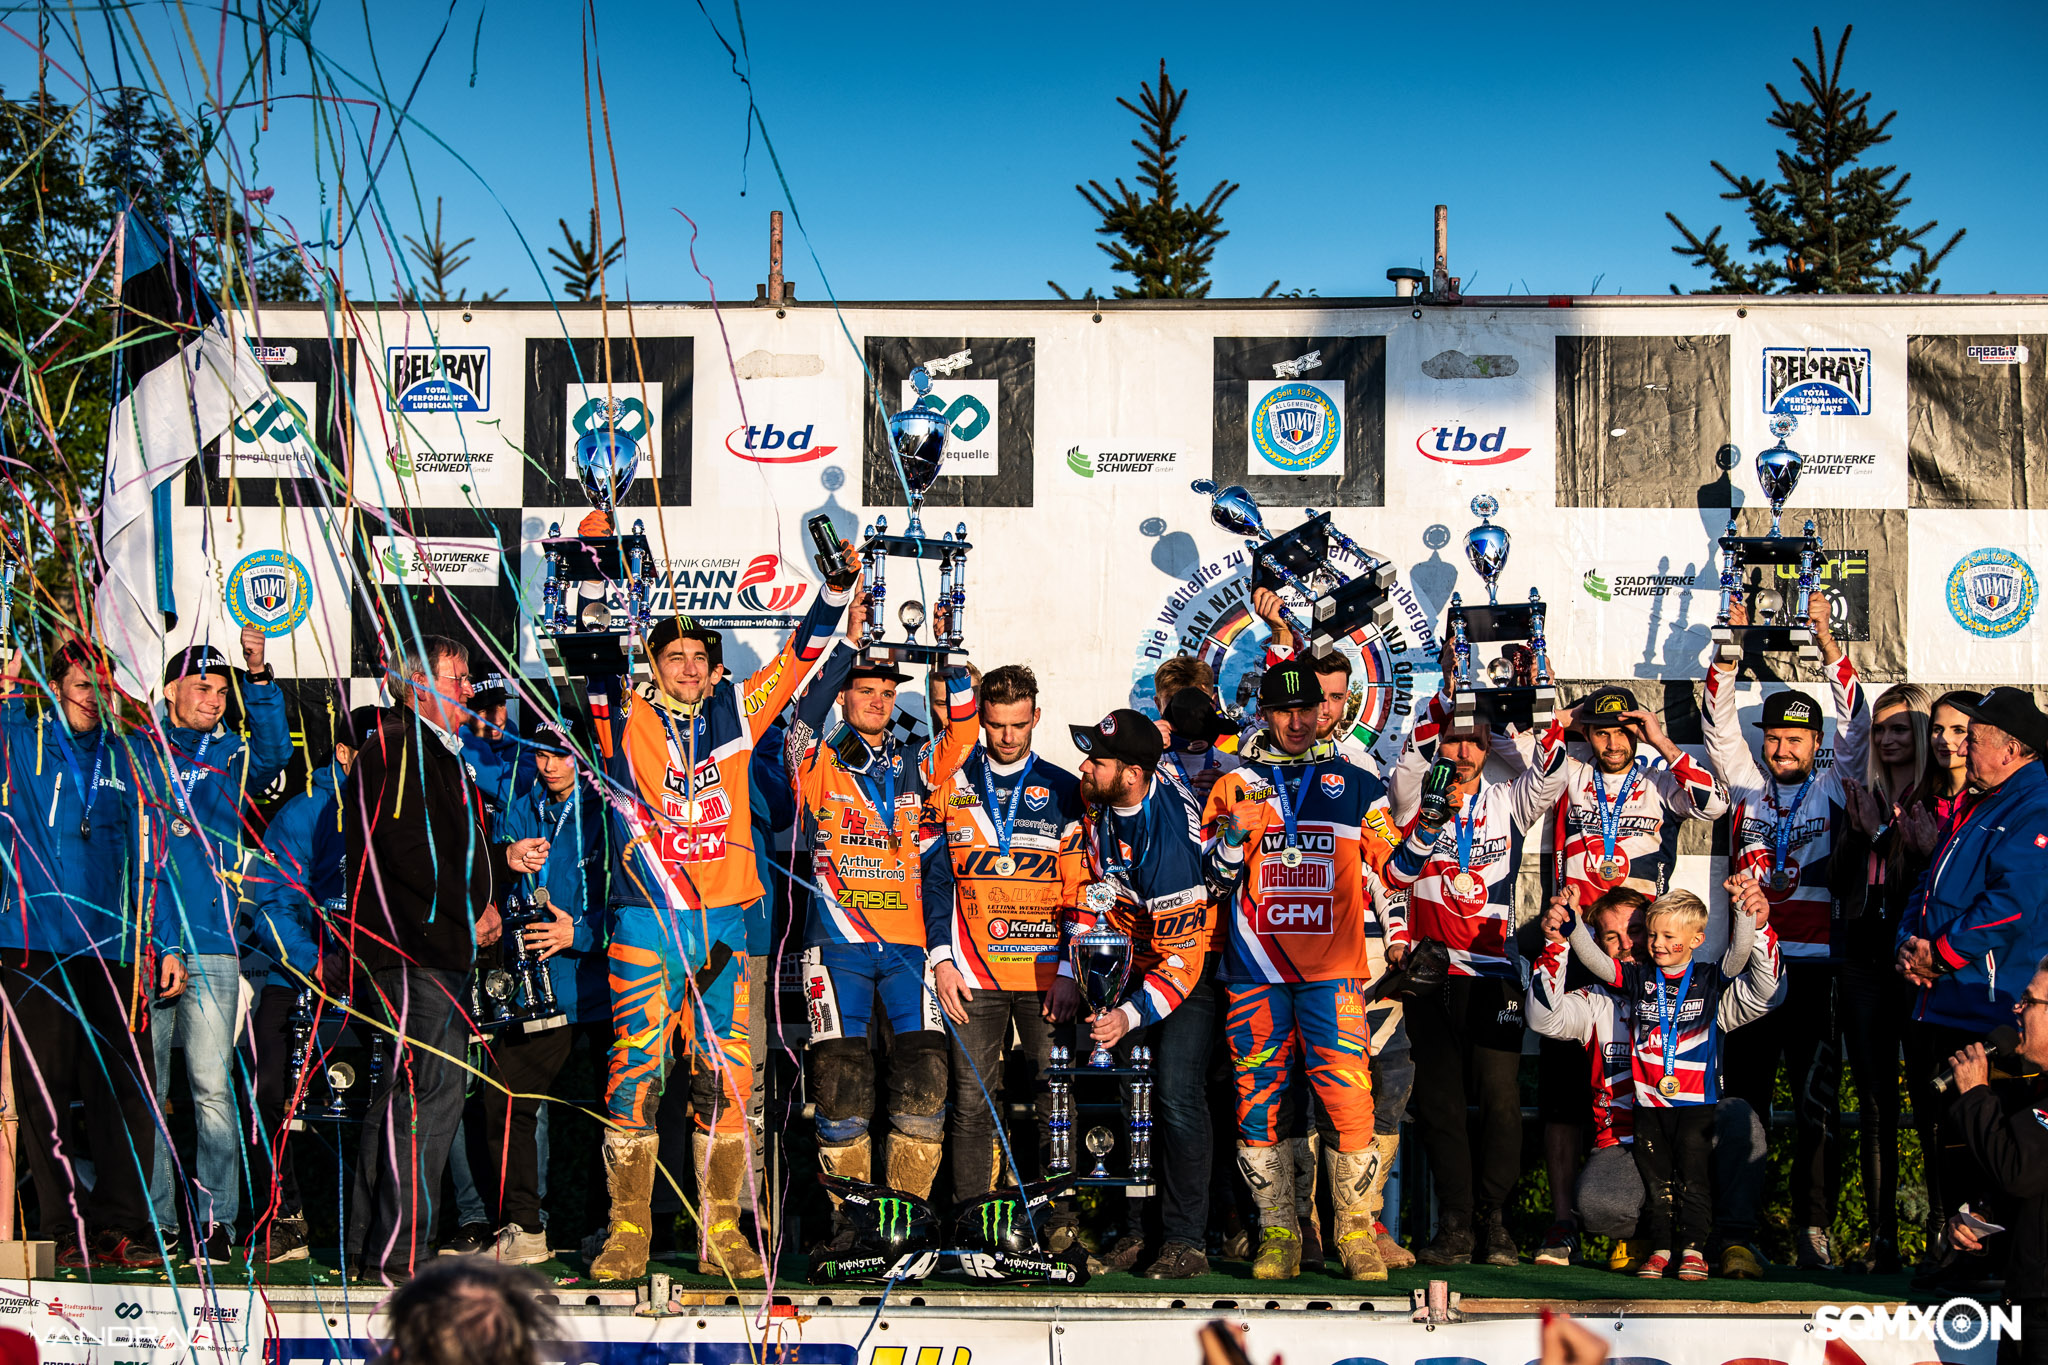 Calendrier Side Car Cross 2021 Sidecarcross.homepage with wild sidecarcross racing, results